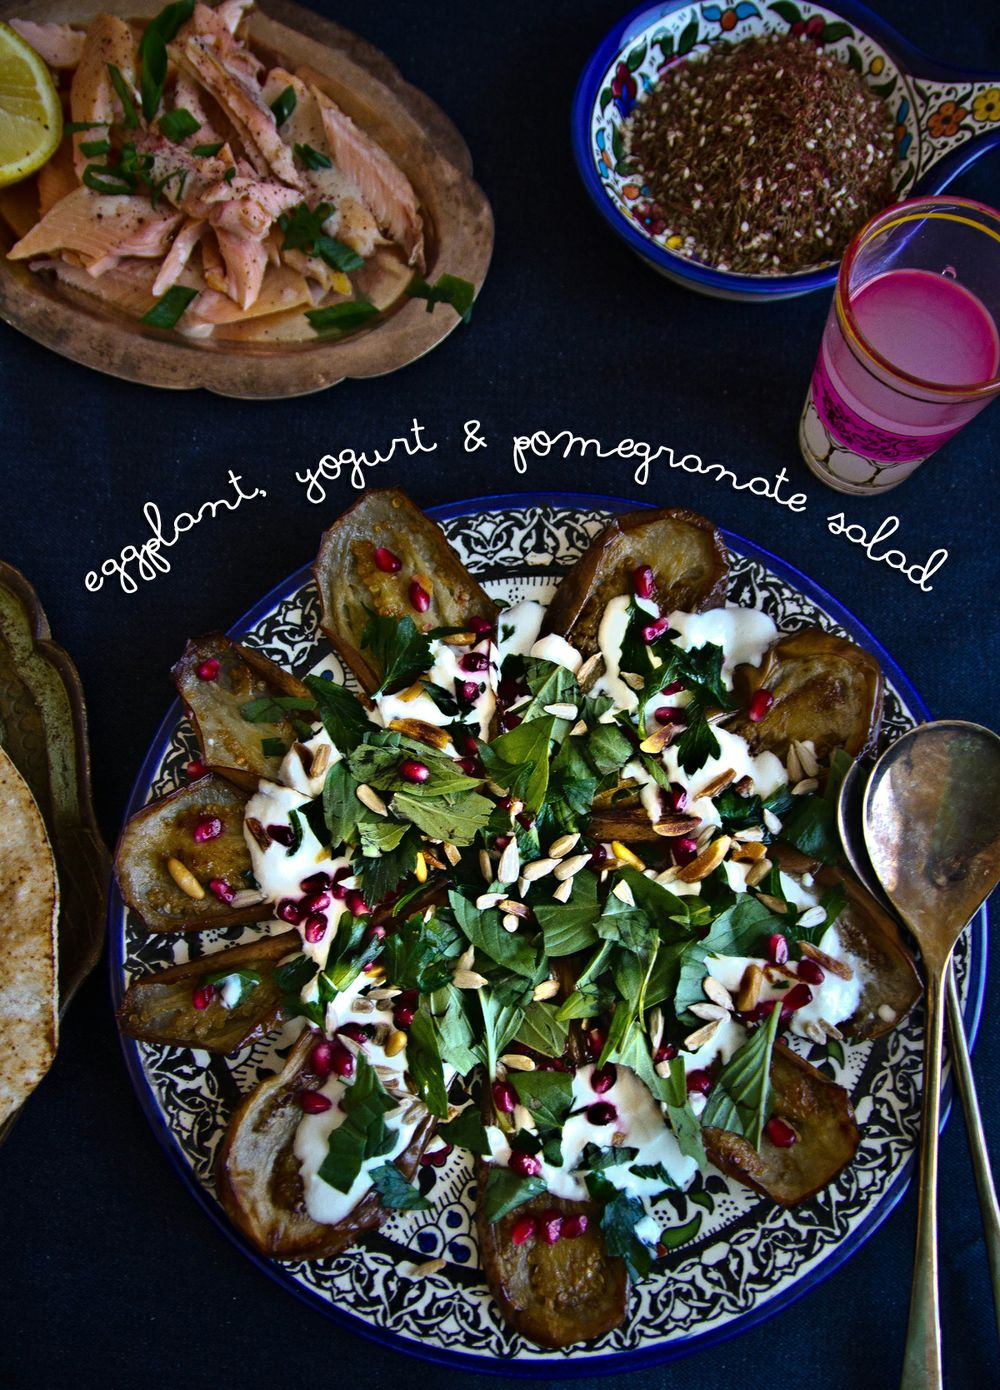 m-eggplant-pomegranate-2-2